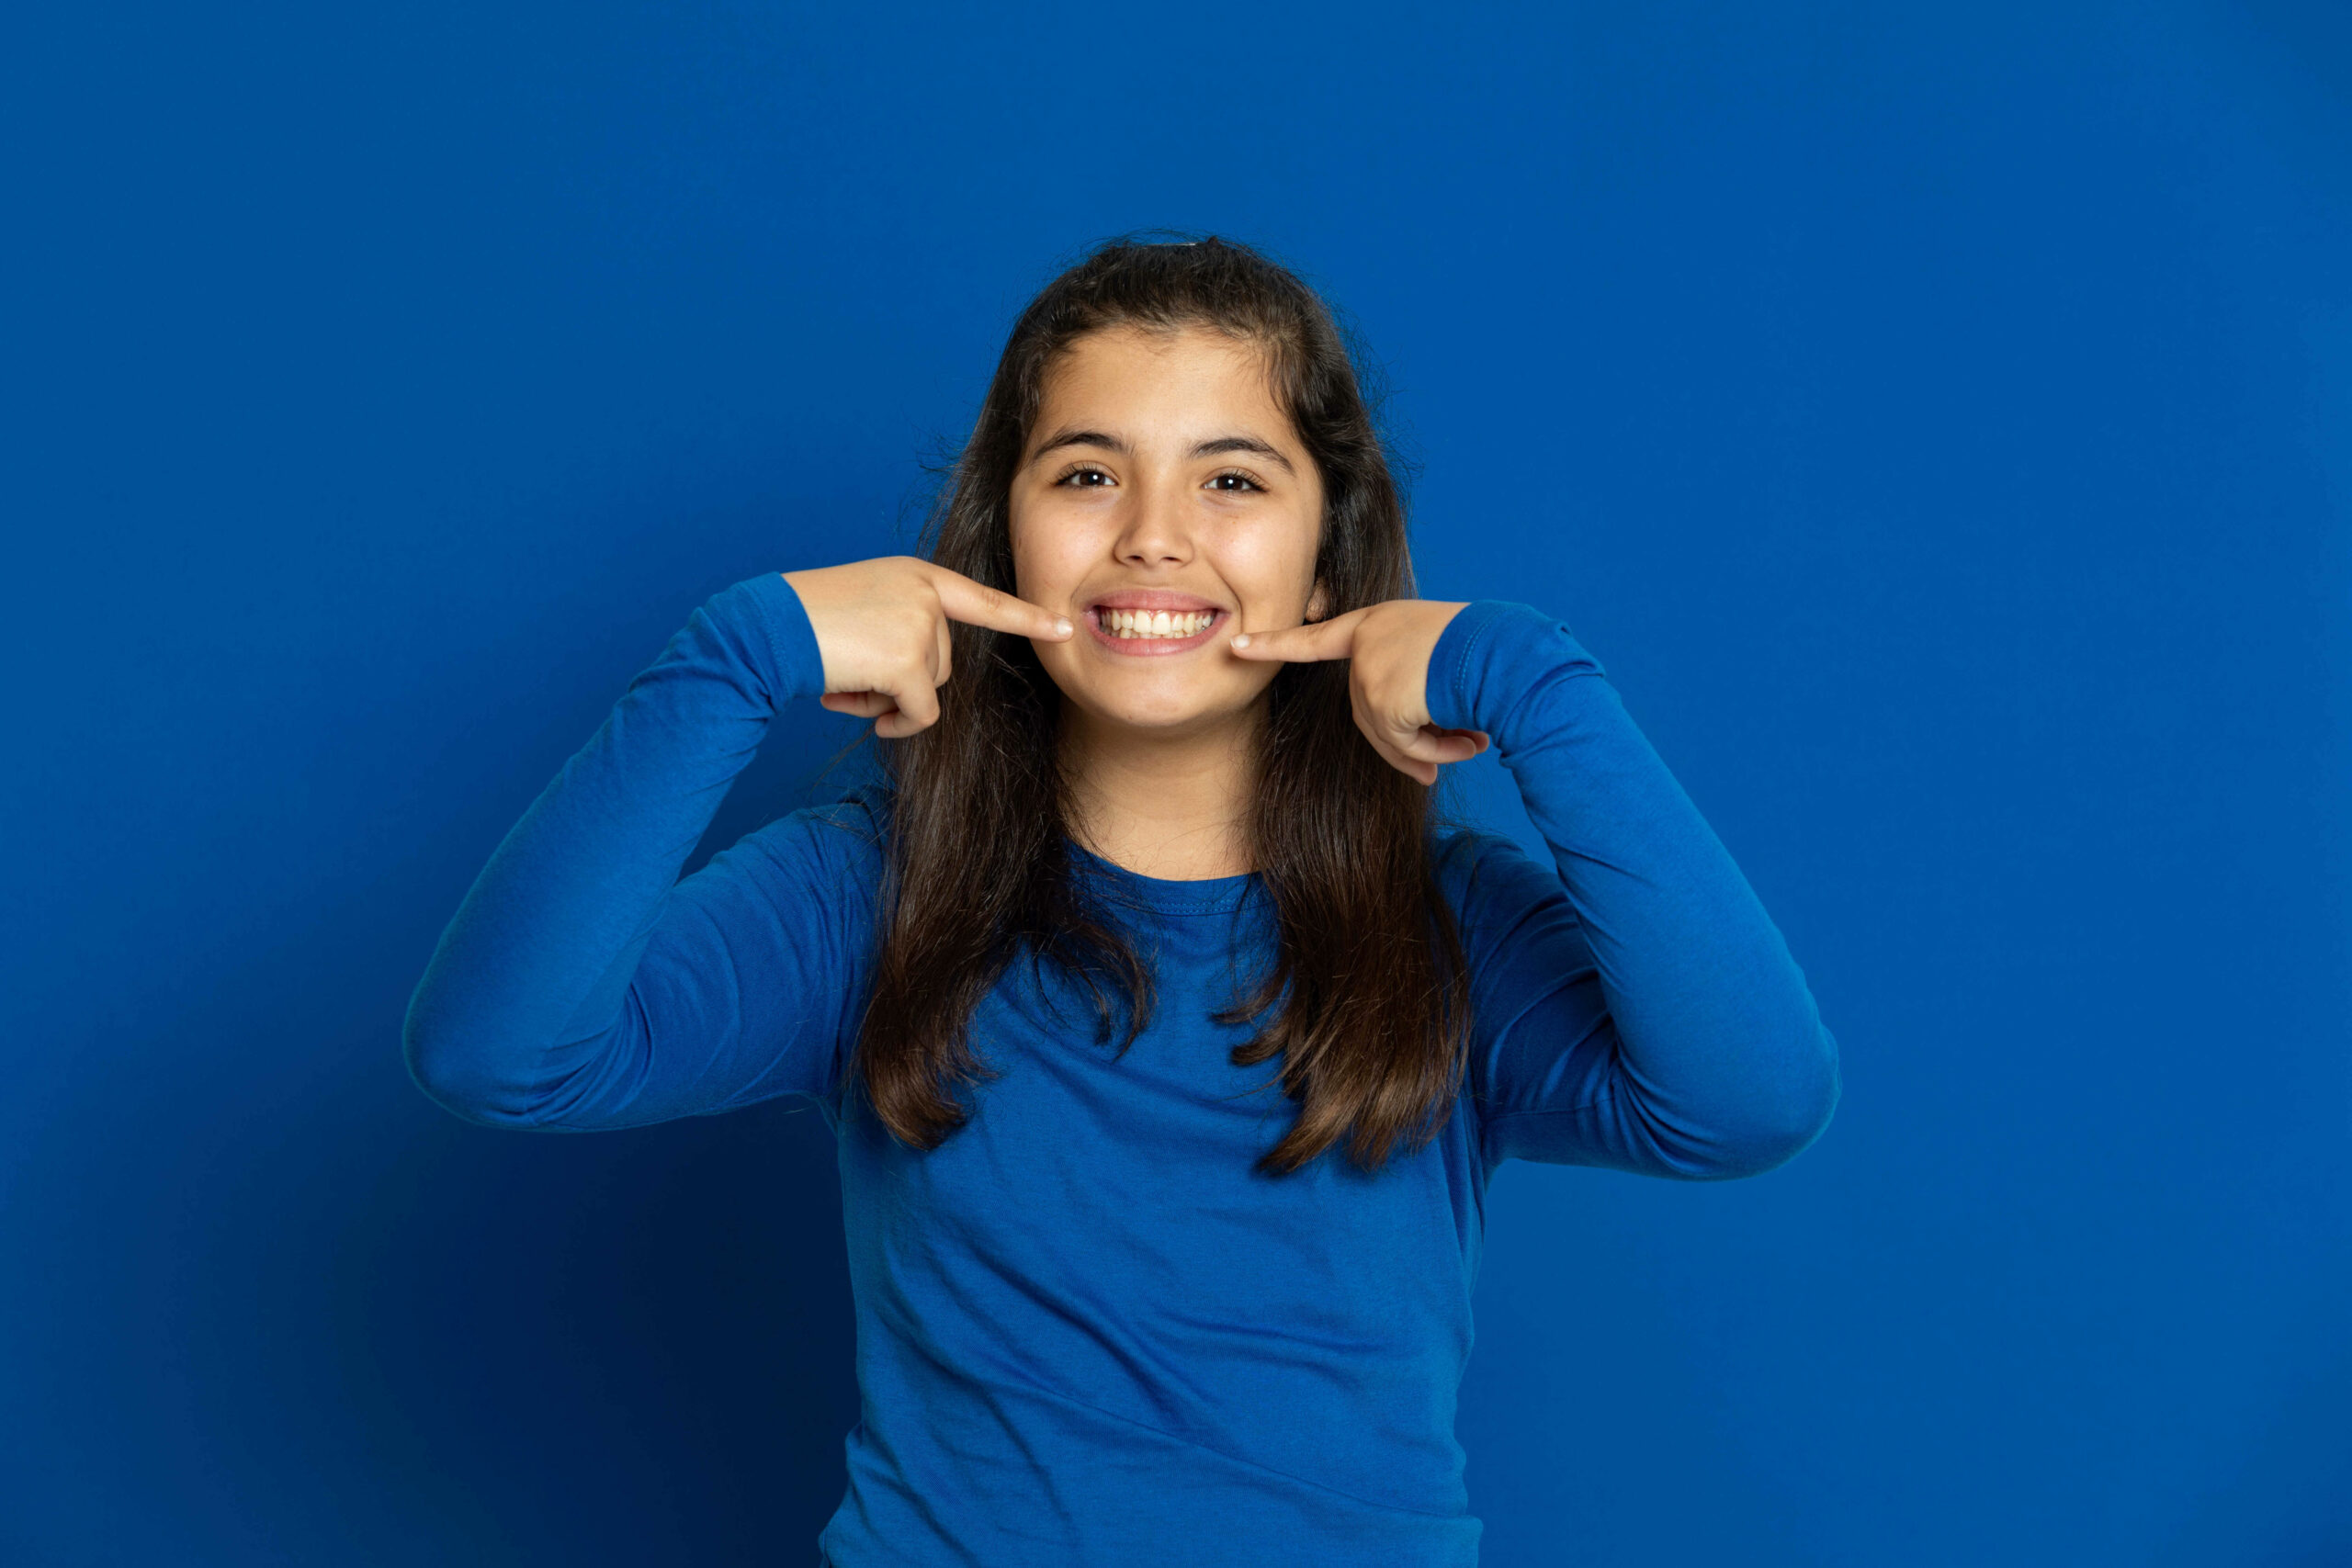 adorable-preteen-girl-on-a-blue-background-in-chicago